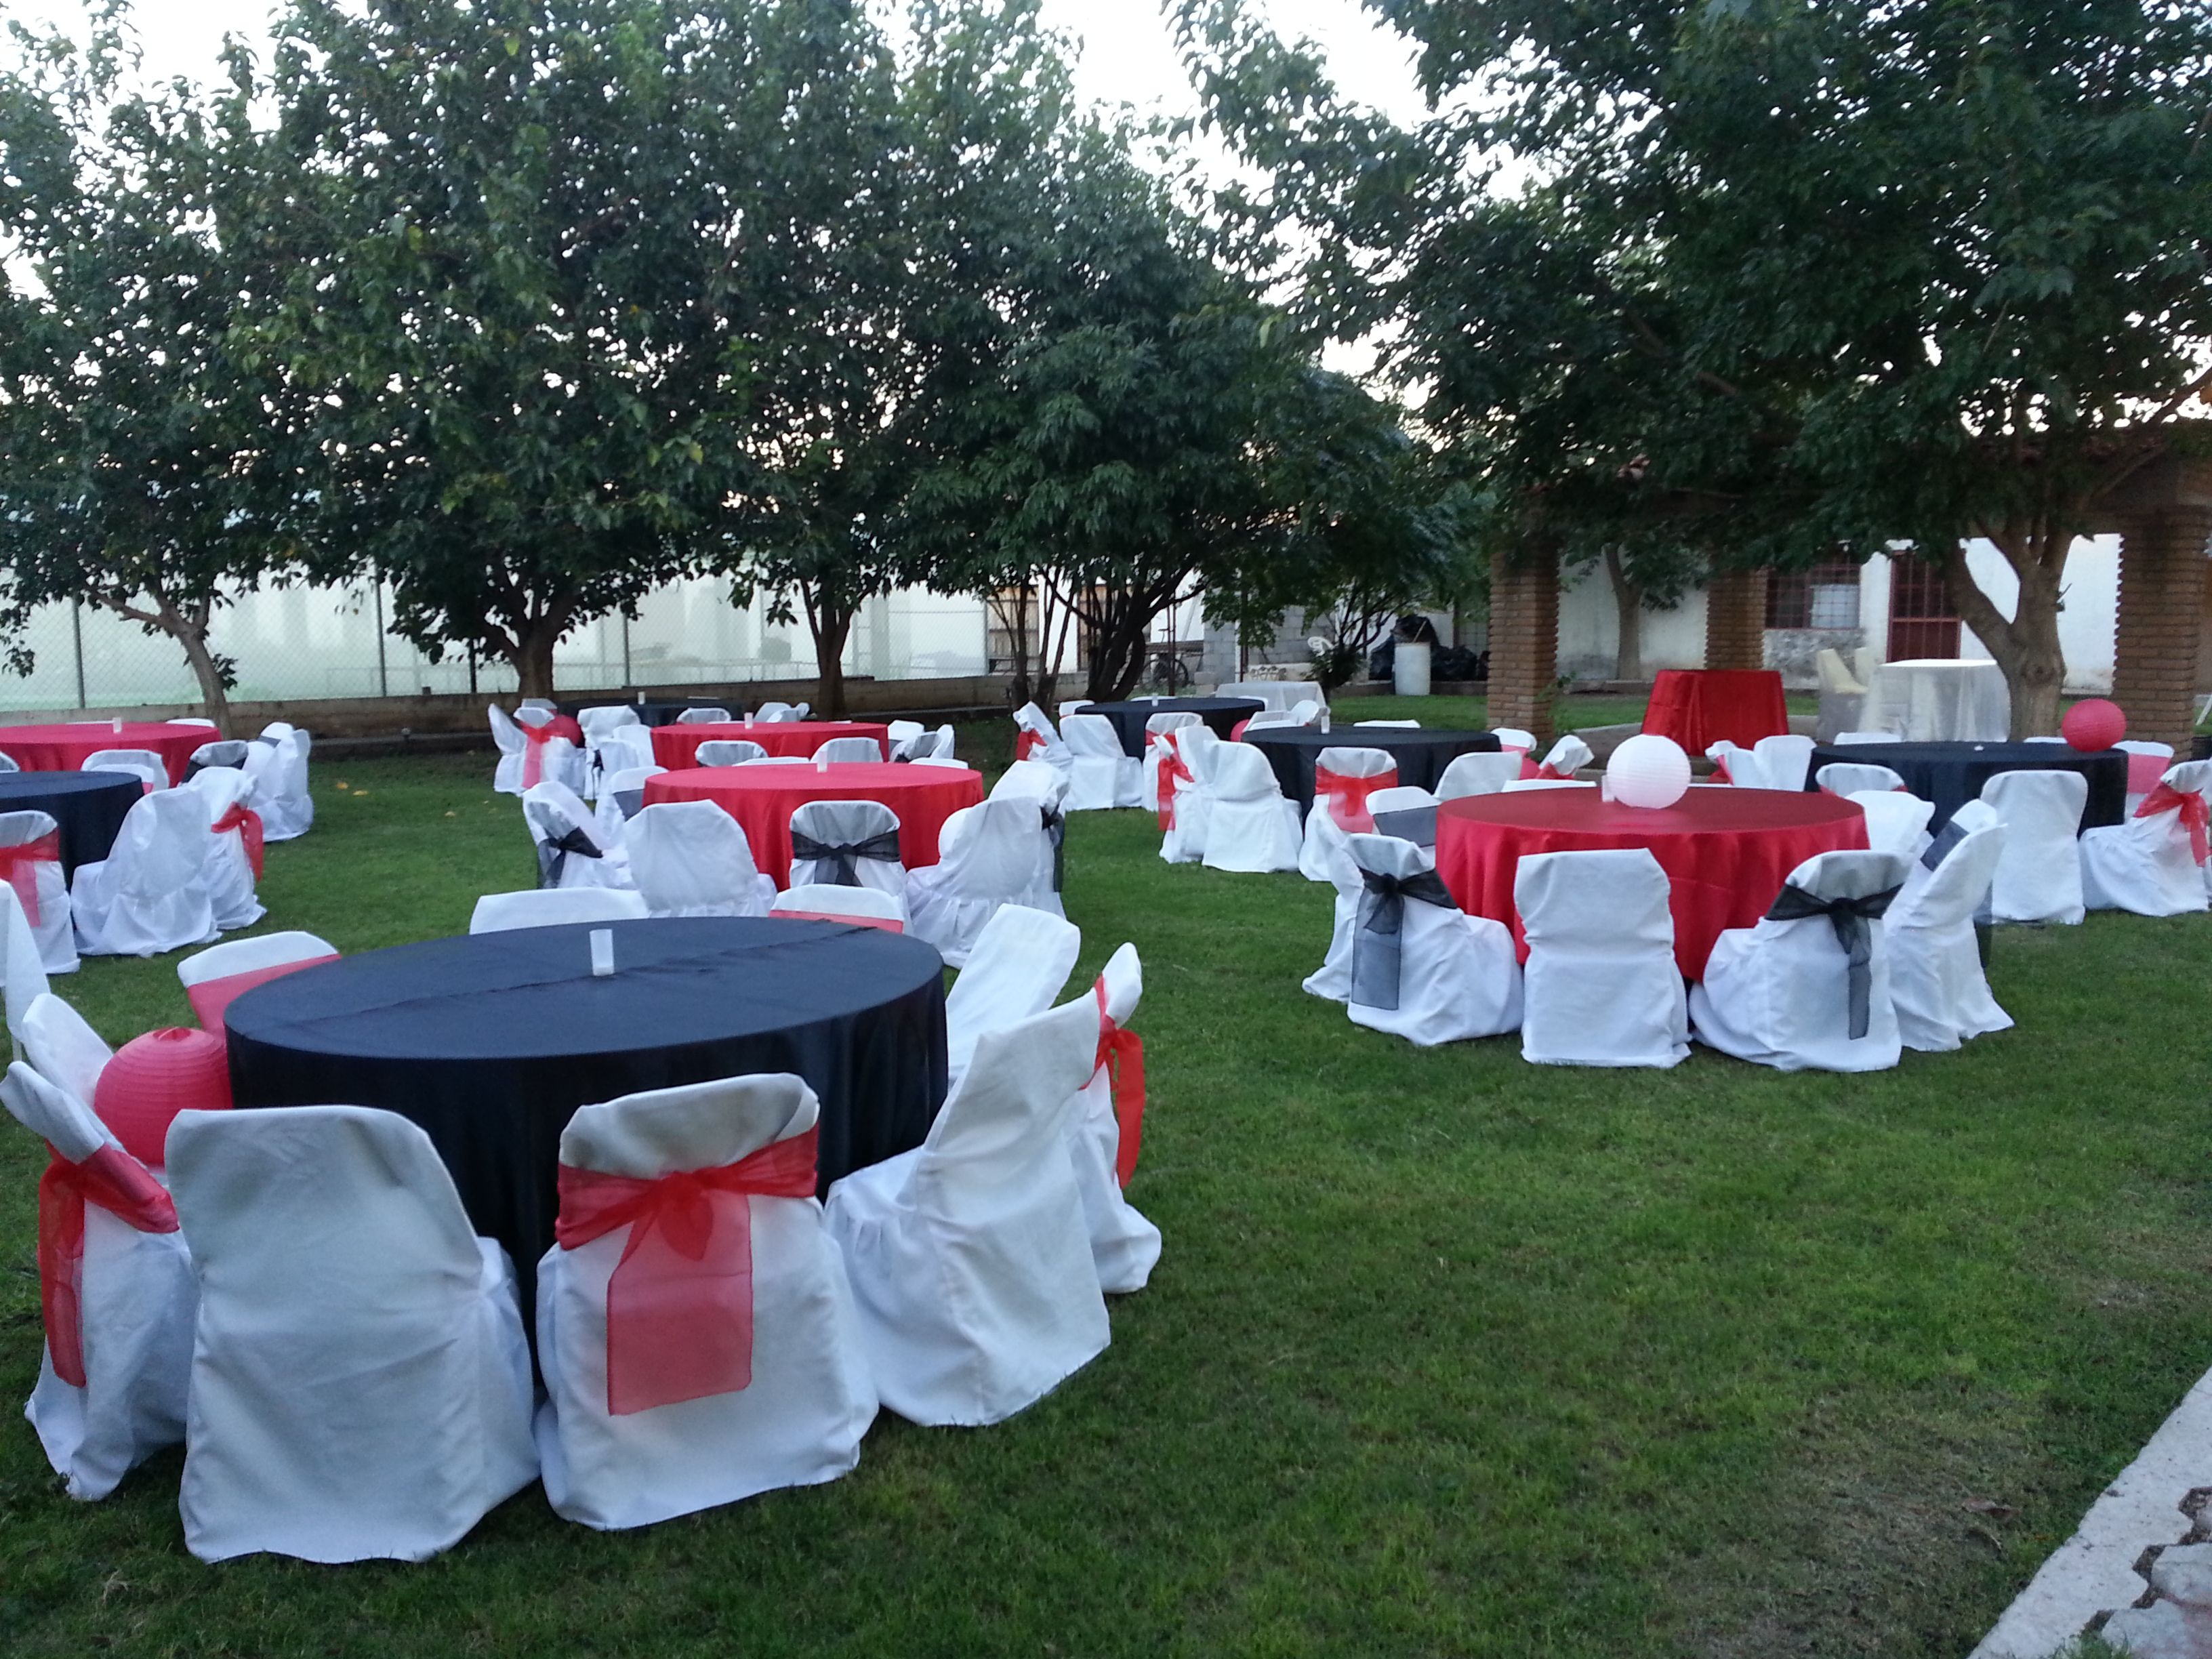 Boda de d a en jard n decoraci n blanco negro y rojo for Ideas para decorar jardines